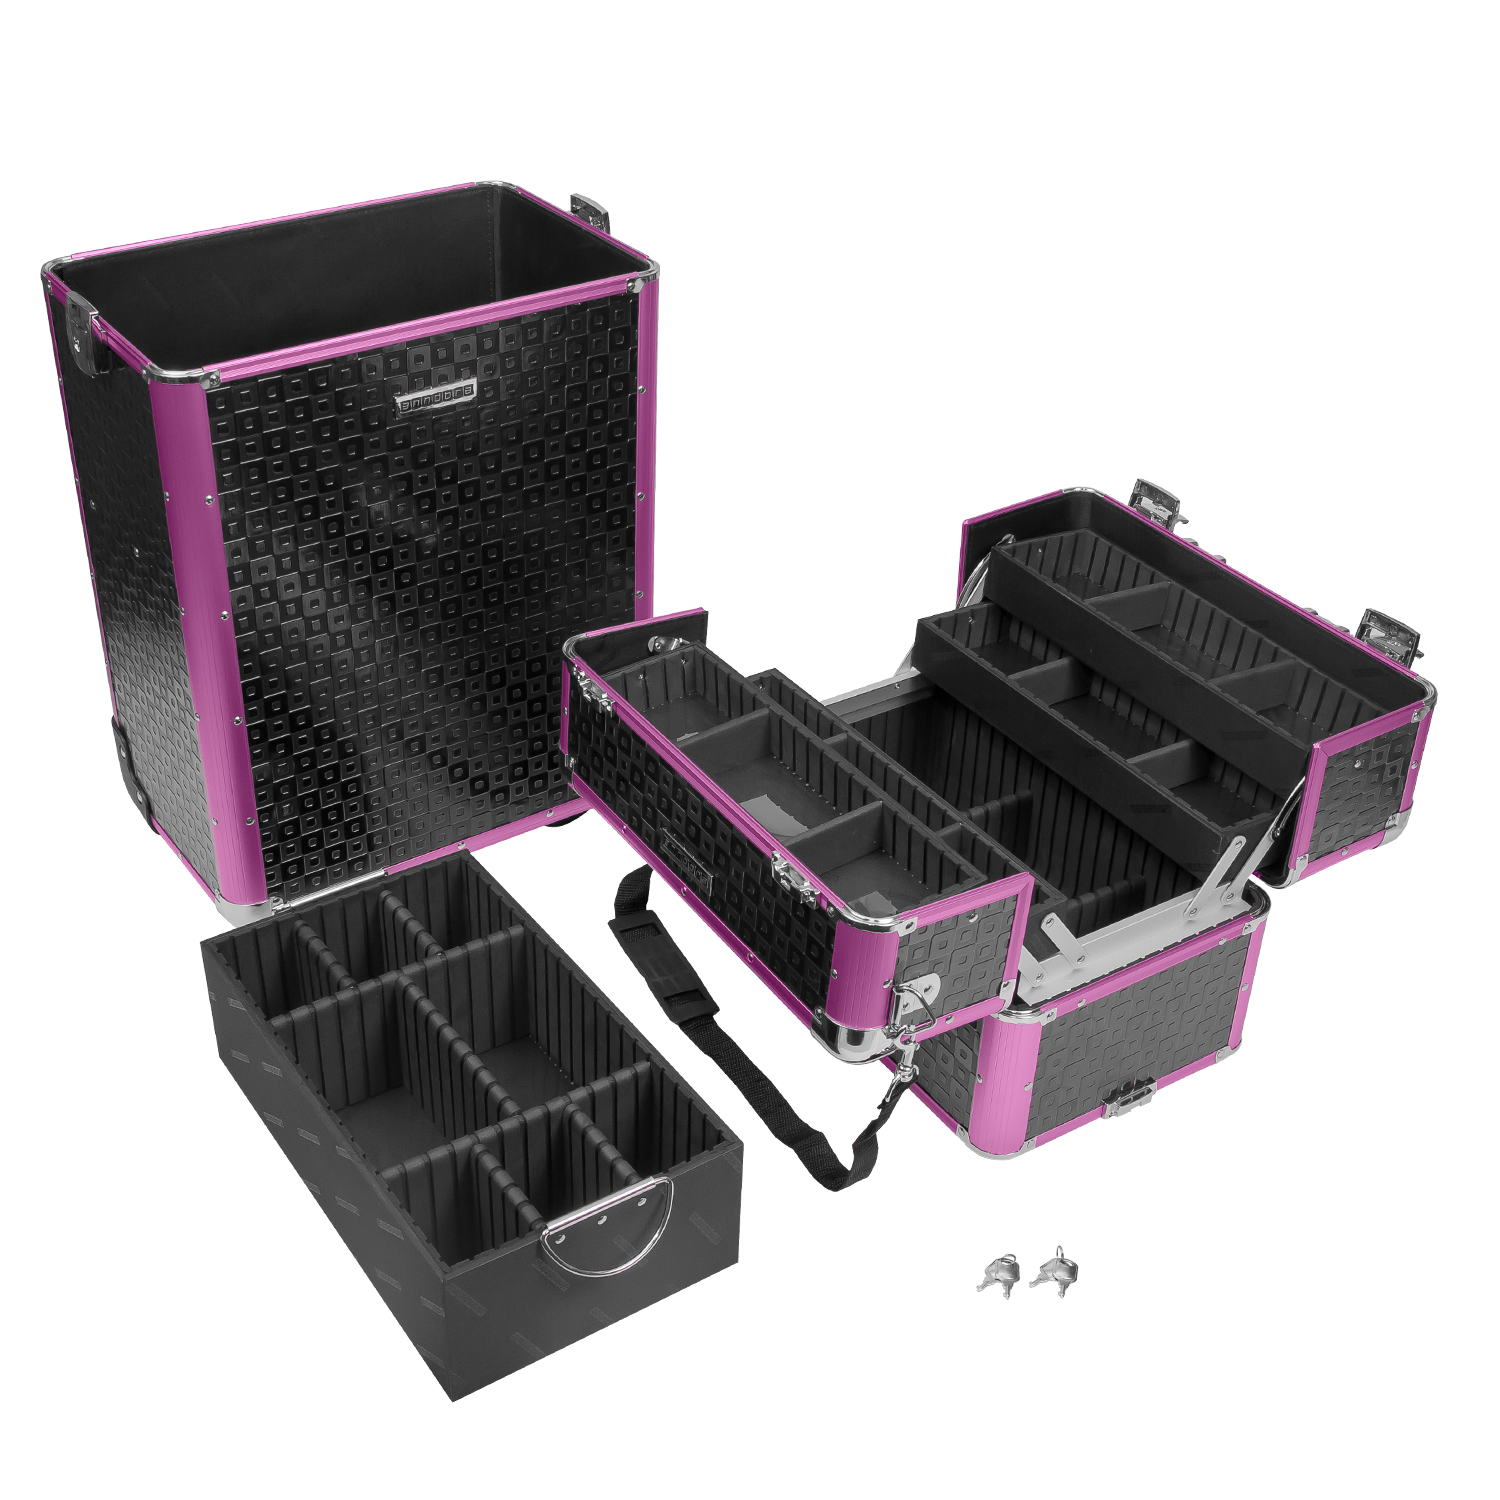 pilotenkoffer trolley beauty case alu karo struktur 60 l schwarz violett ebay. Black Bedroom Furniture Sets. Home Design Ideas